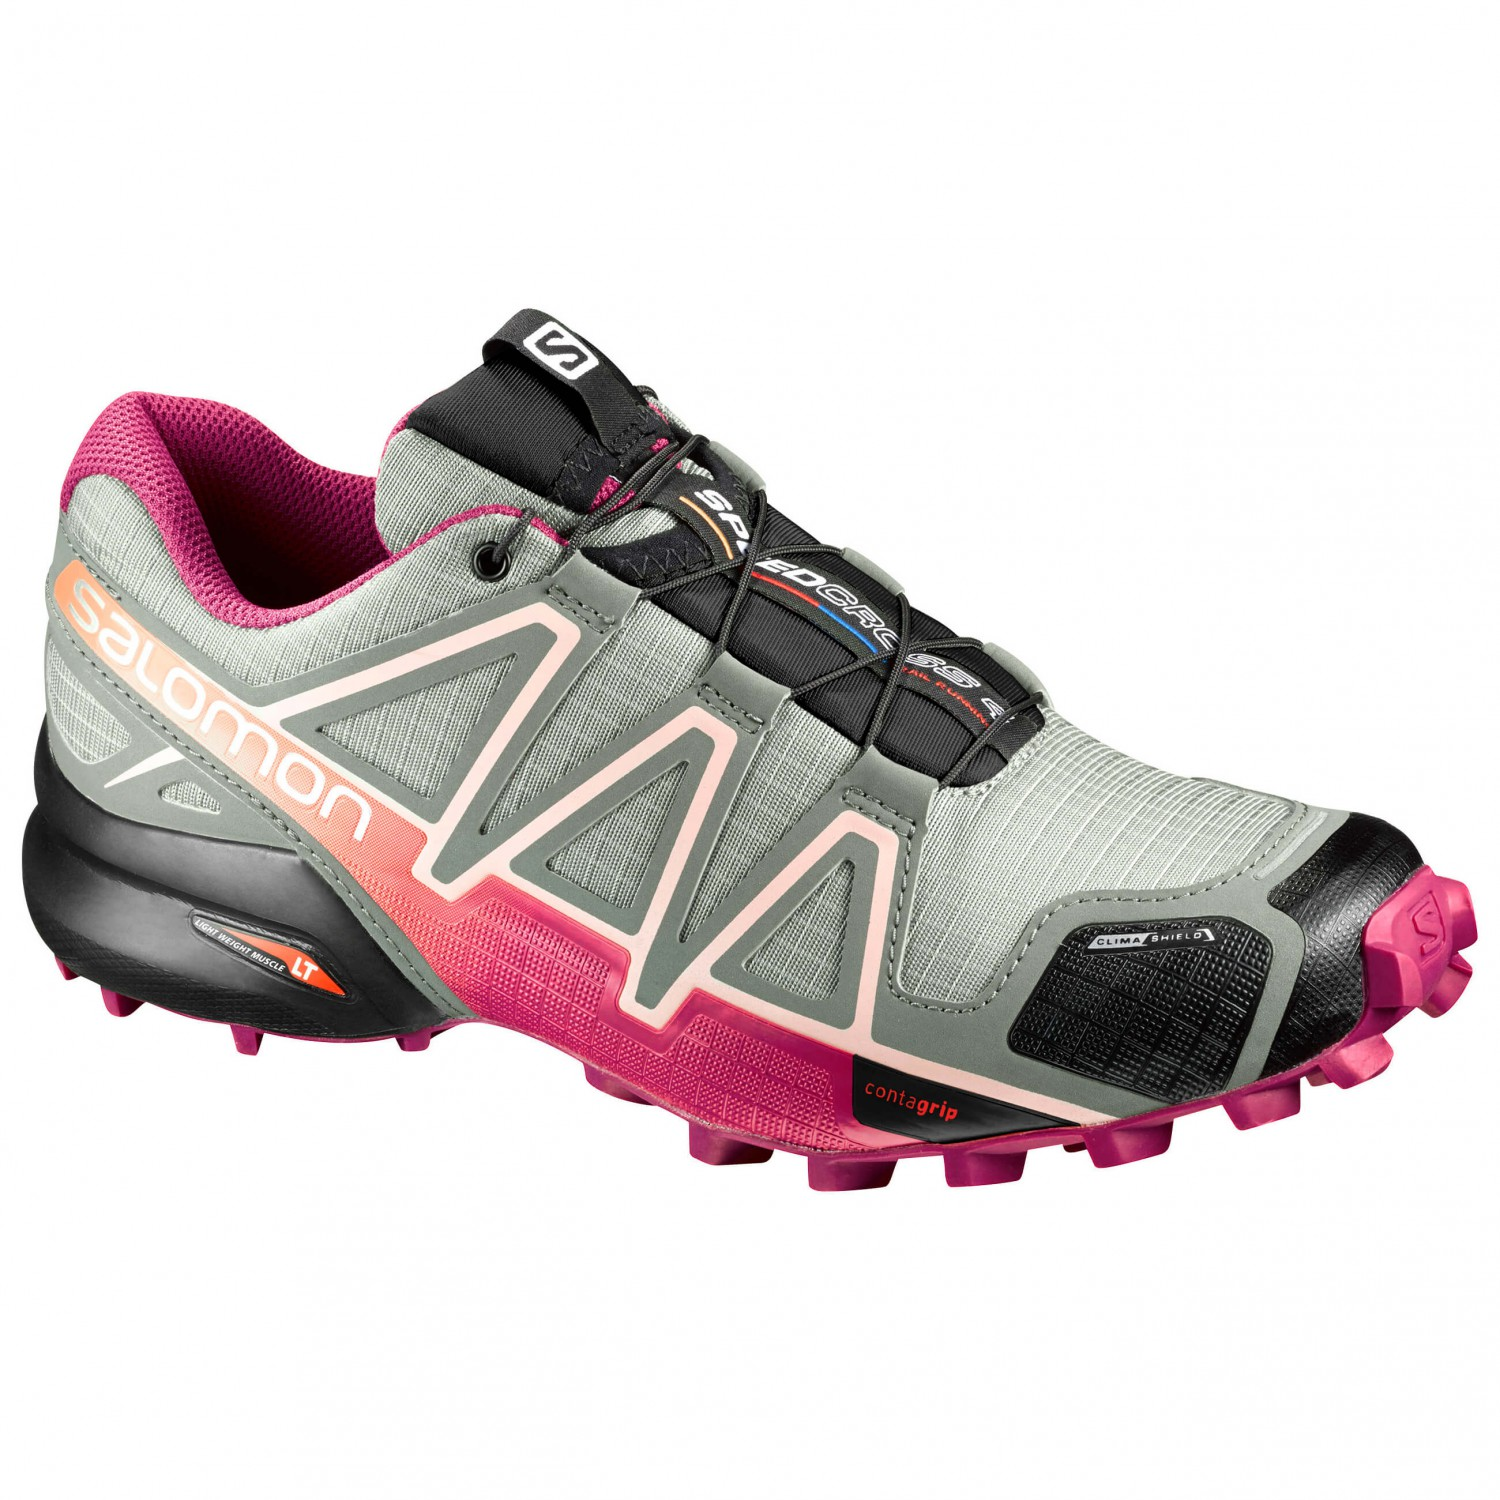 new arrival c6182 acdd7 Salomon - Women s Speedcross 4 CS - Trailrunningschuhe Shadow   Sangria    Peach Nectar